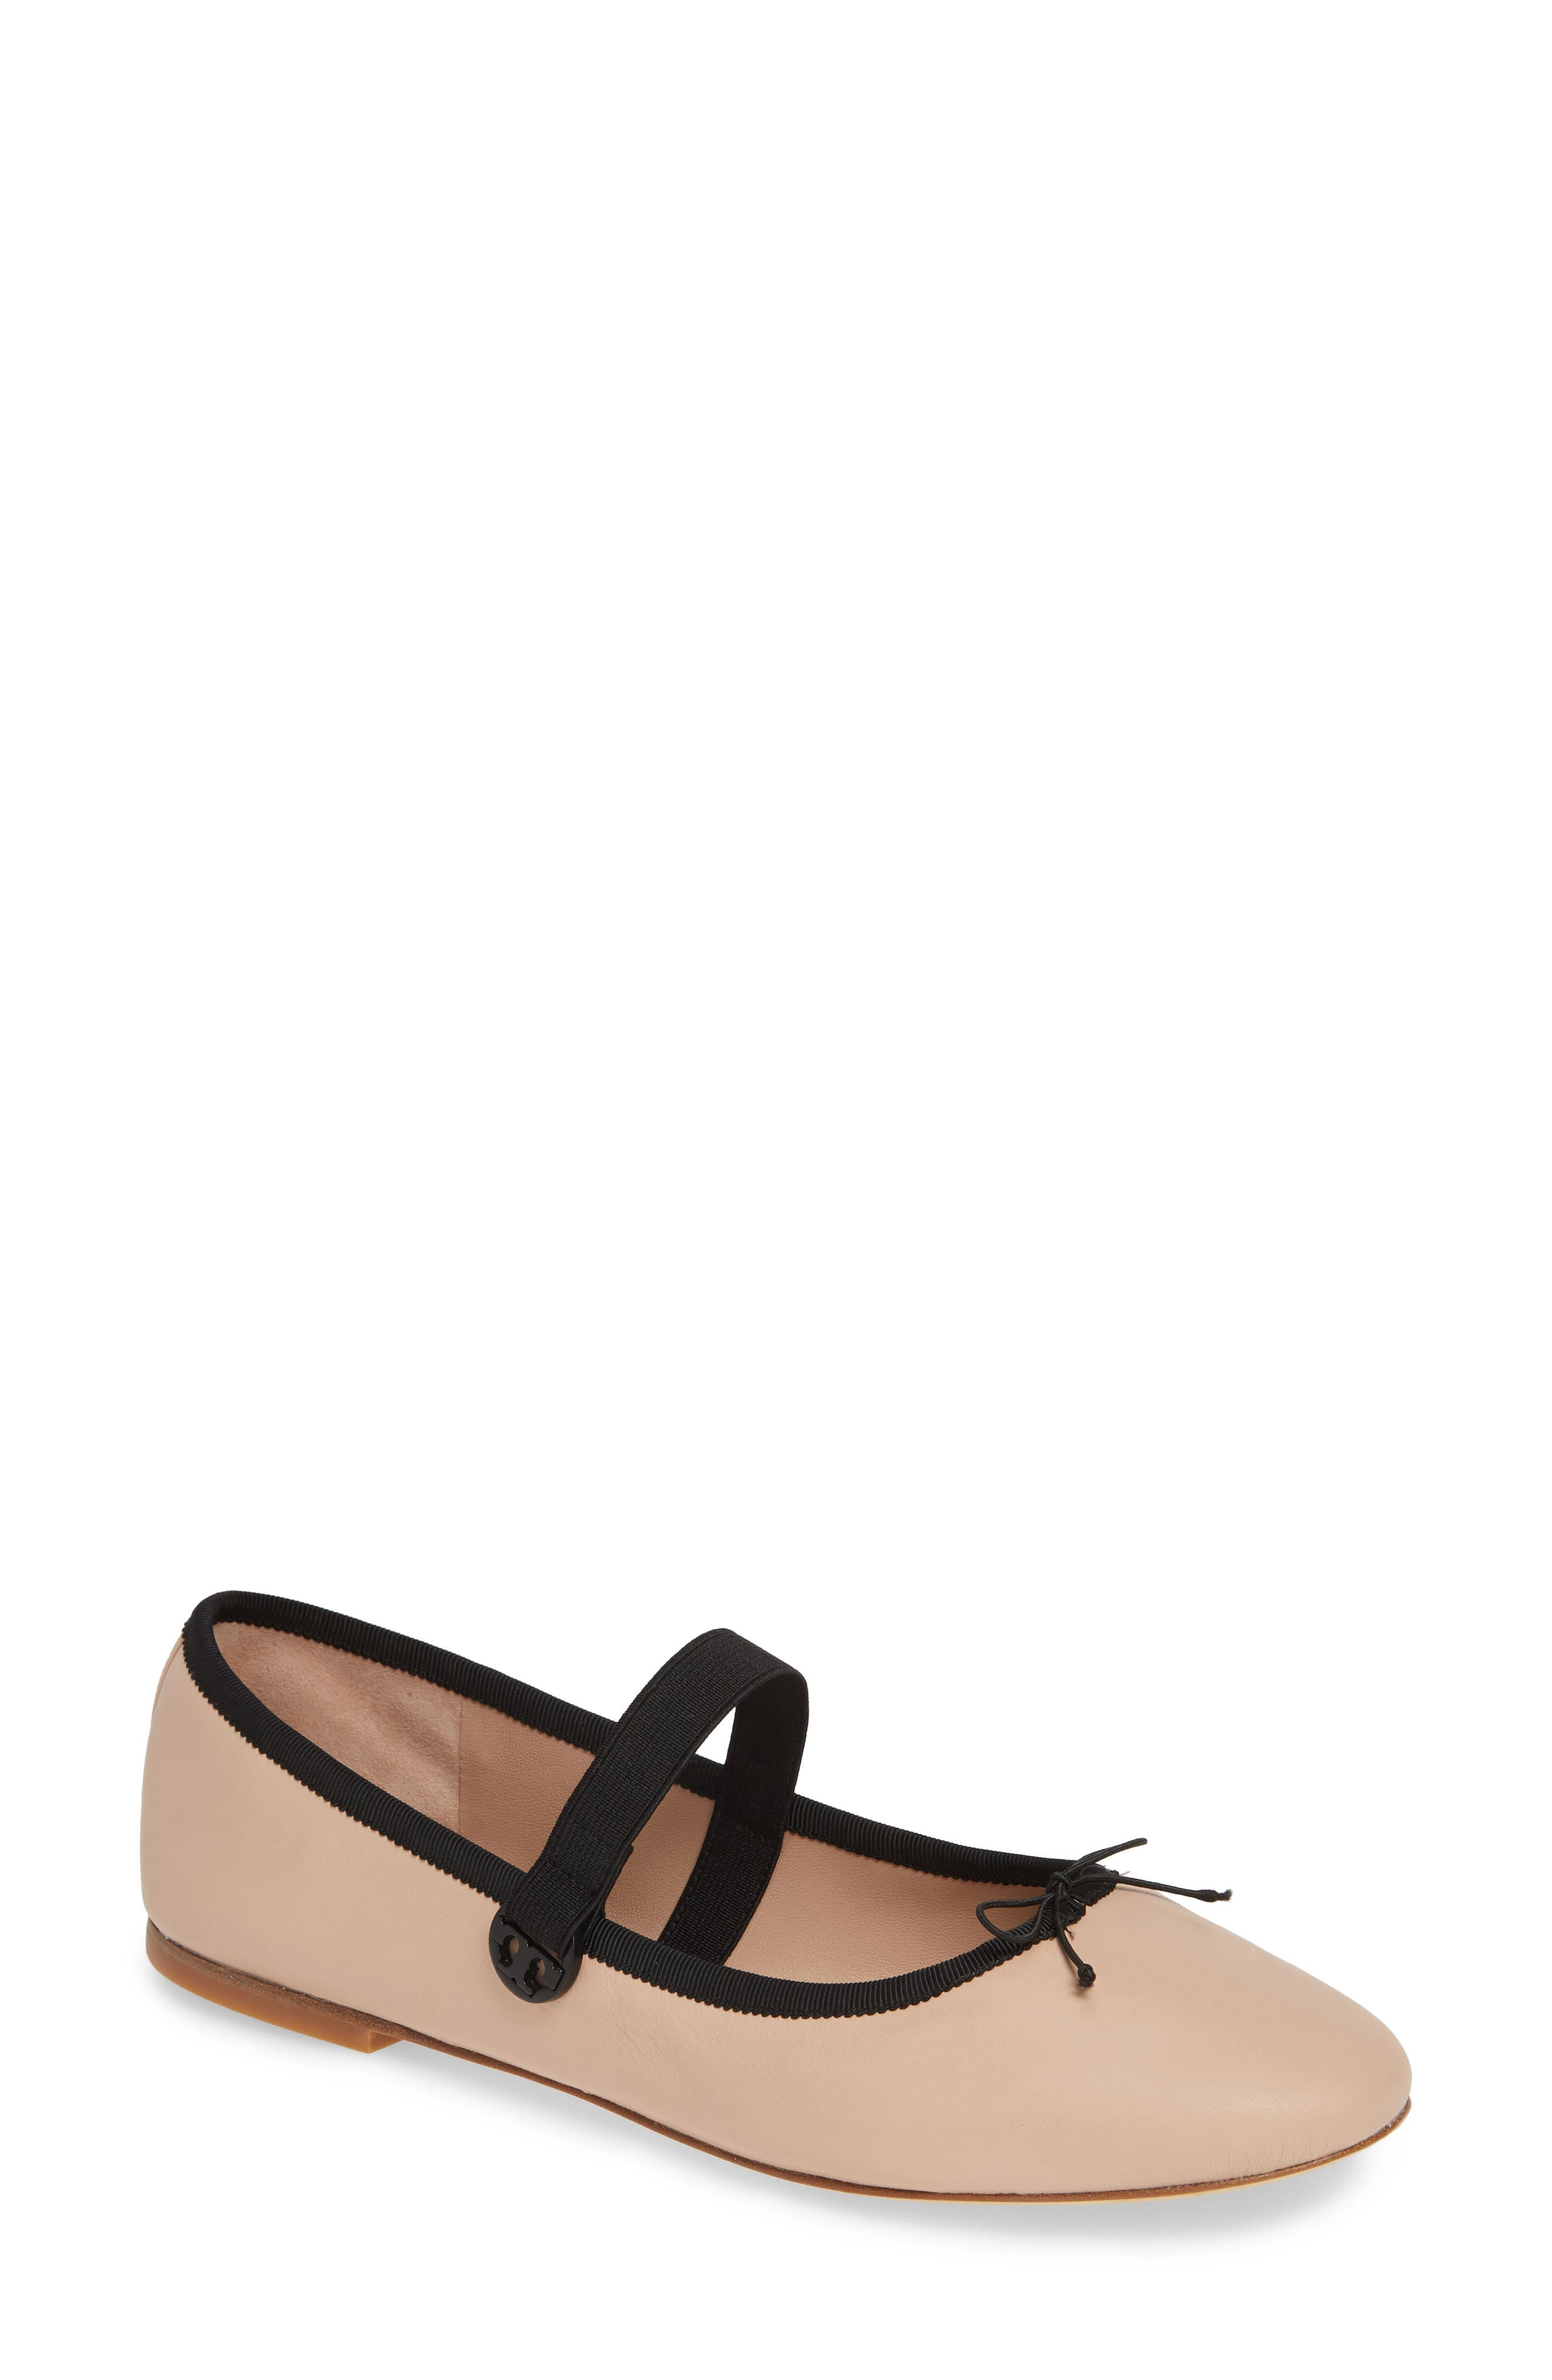 Mary Jane Ballet Flat, Main, color, GOAN SAND/ PERFECT BLACK